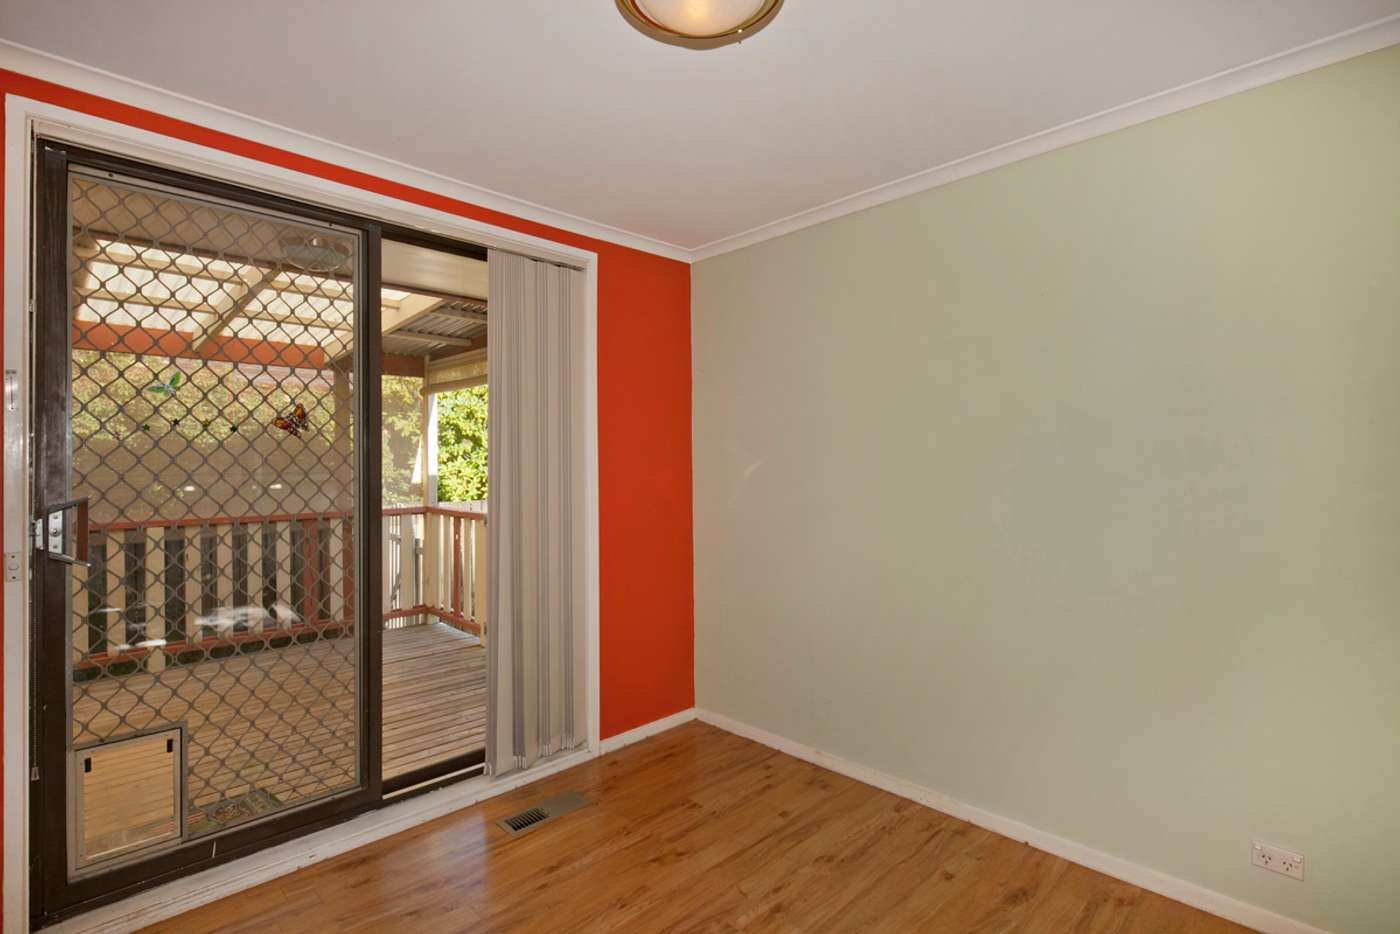 Sixth view of Homely house listing, 25 Aitkin Circuit, Kambah ACT 2902